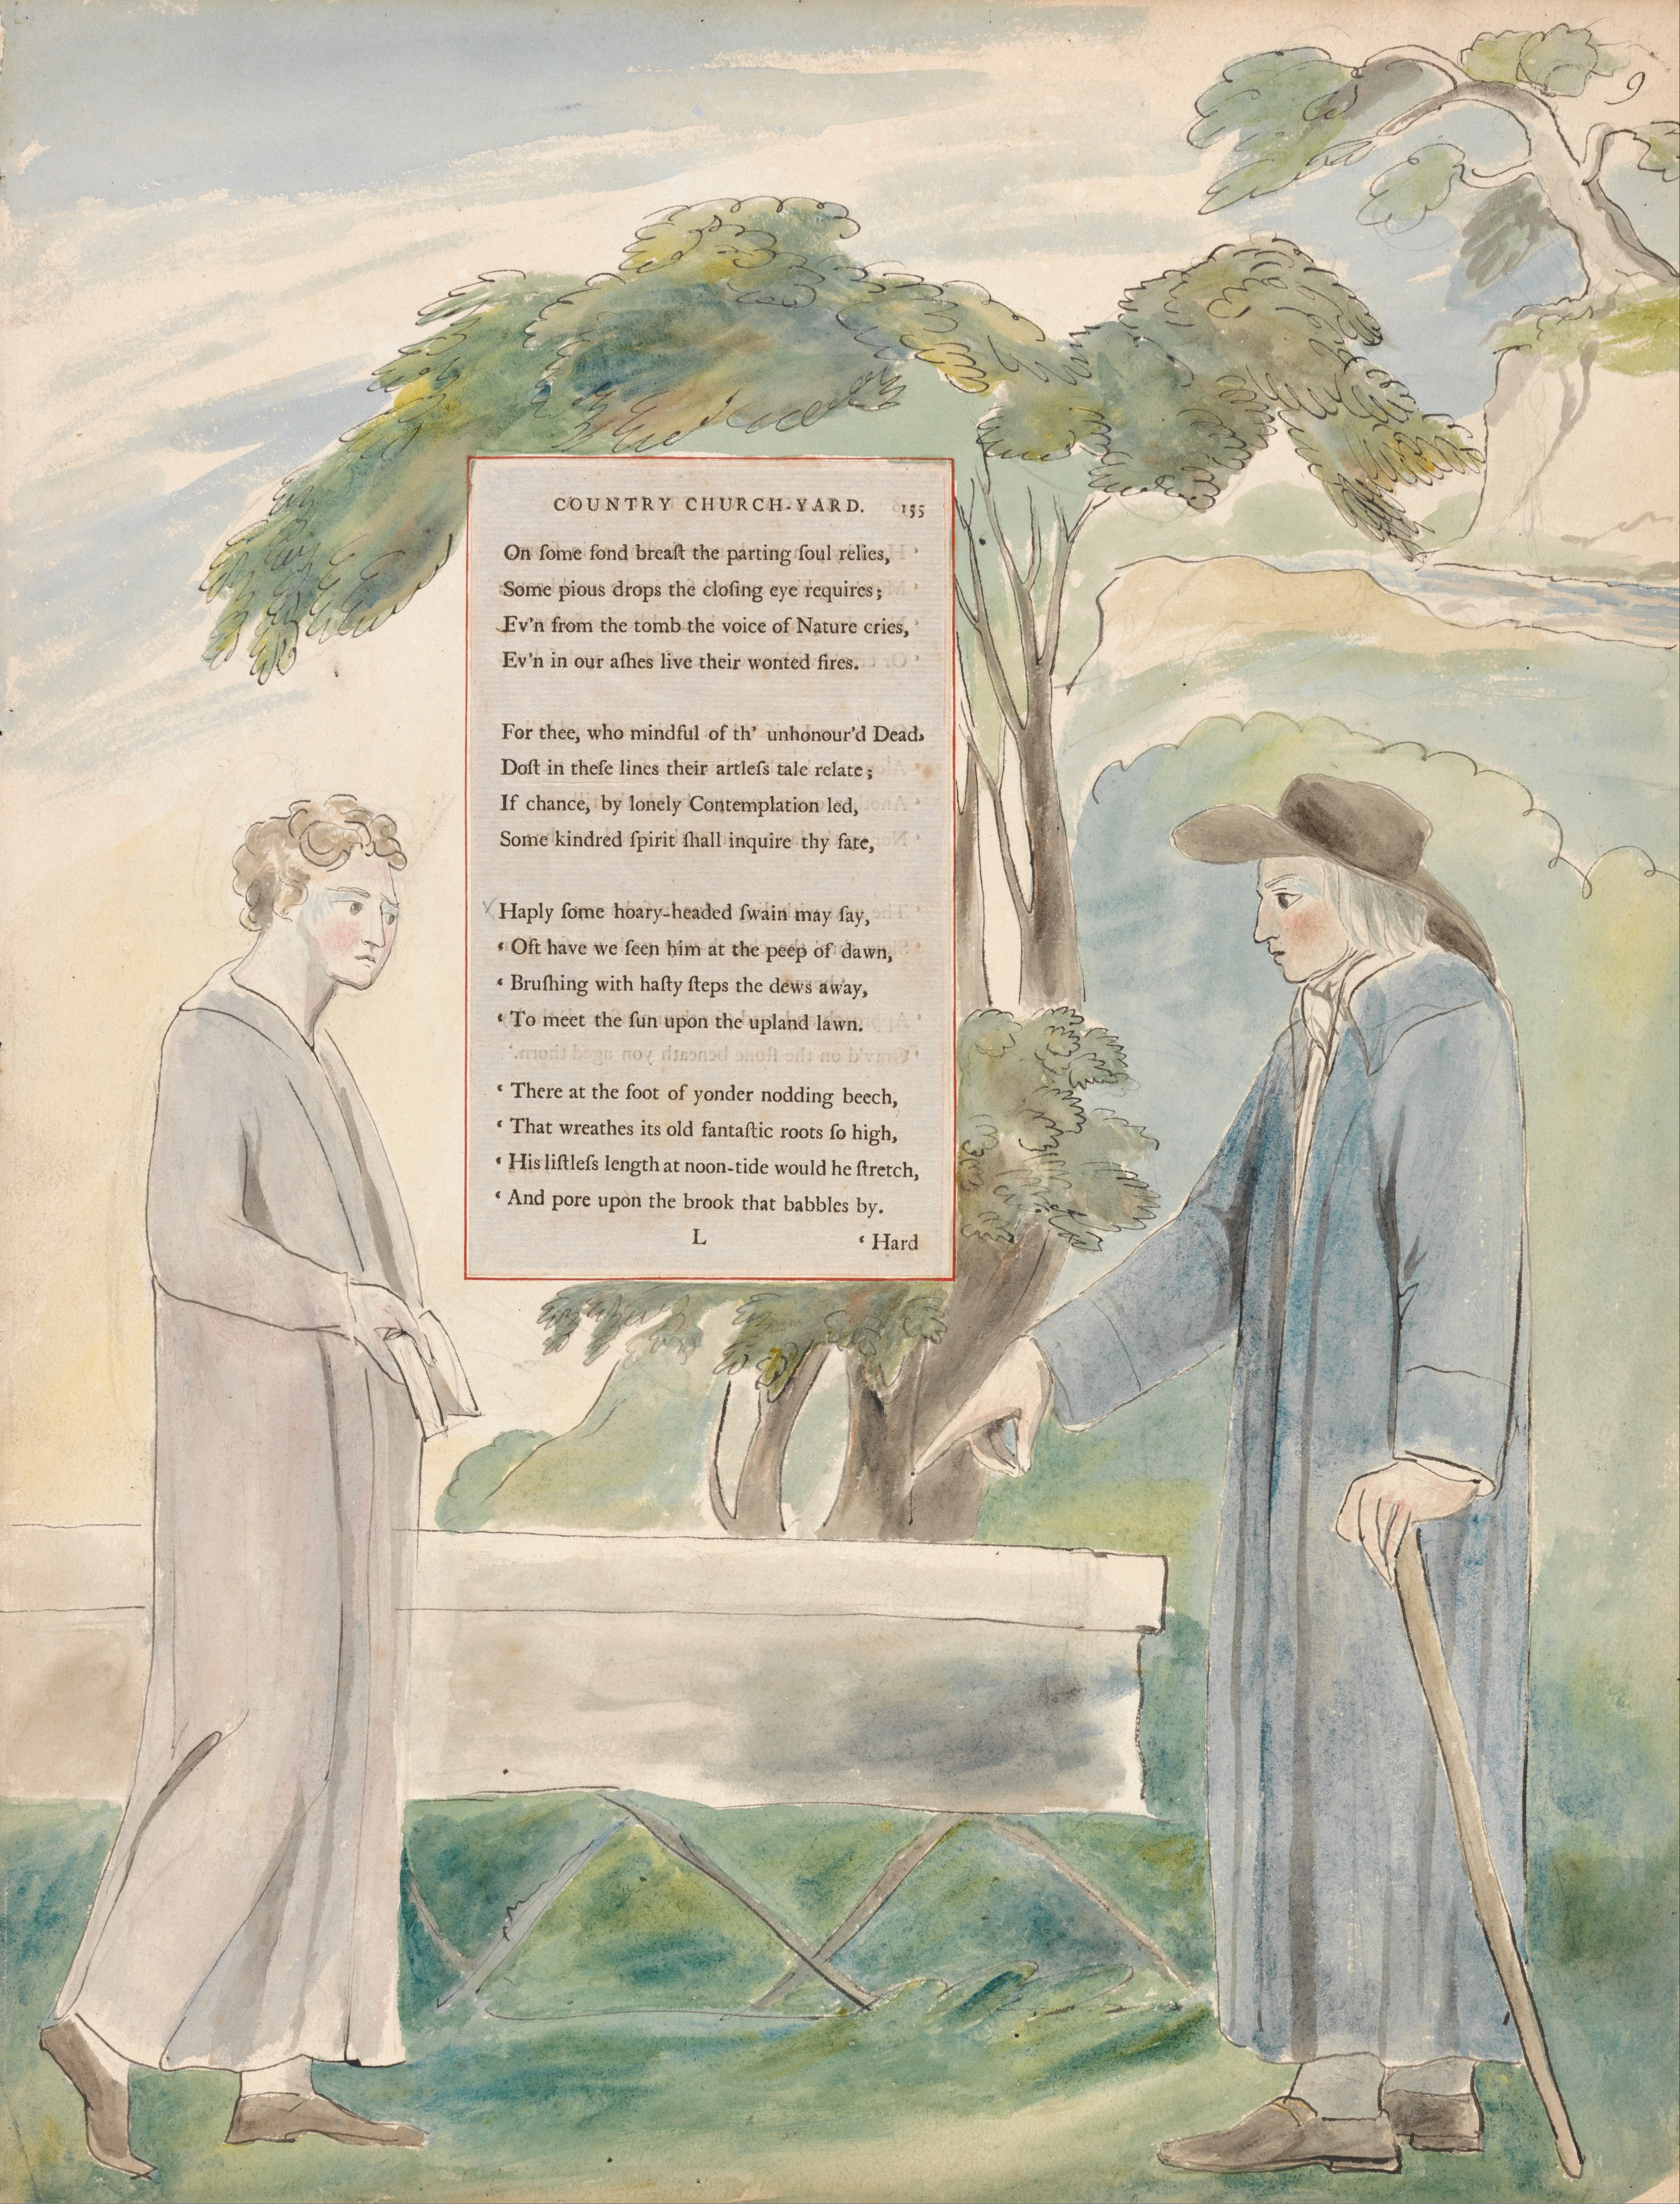 elegy written in country chuchyard Elegy written in a country churchyard is a restoration period poem by thomas gray an elegy, by strict definition, is usually a lament for the dead an elegy, by strict definition, is usually a lament for the dead.